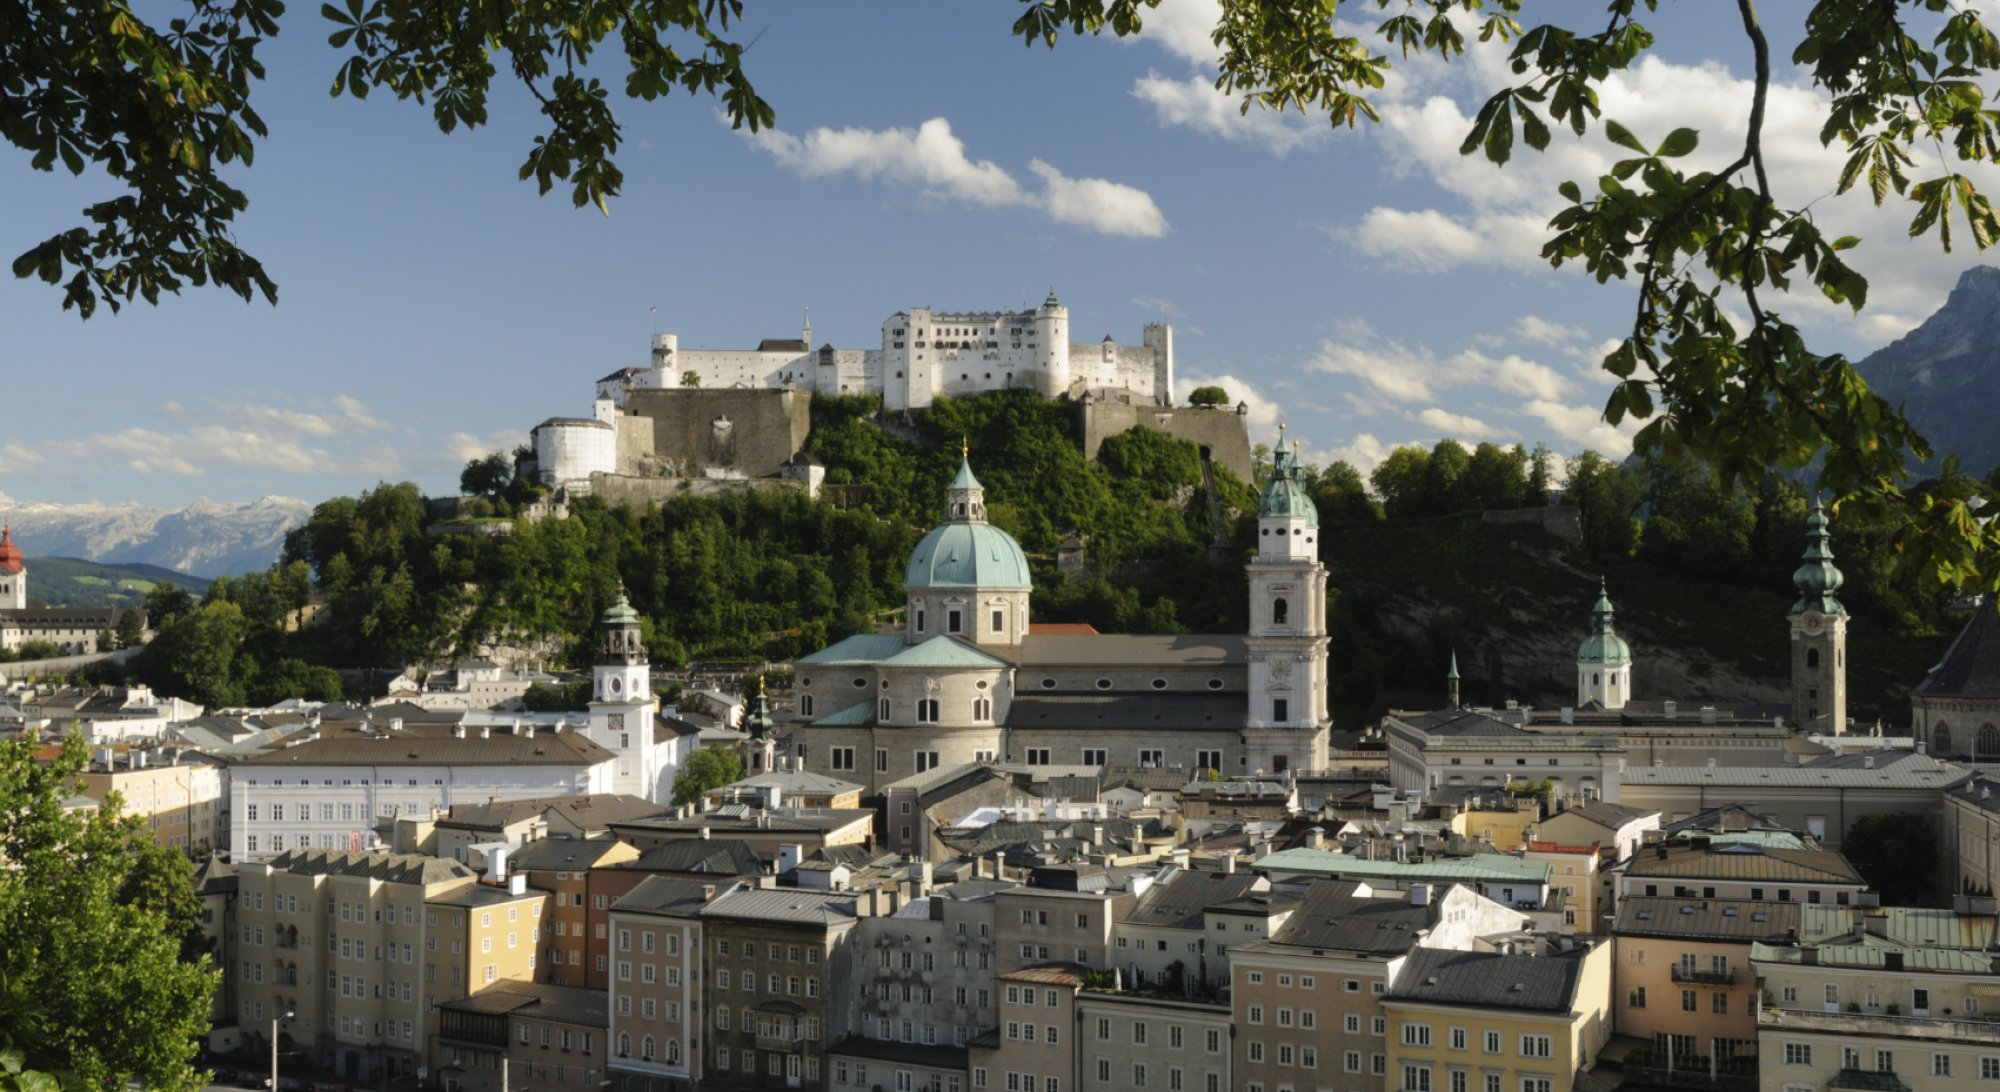 The city of Salzburg is a timeless beauty   © TOURISMUS SALZBURG